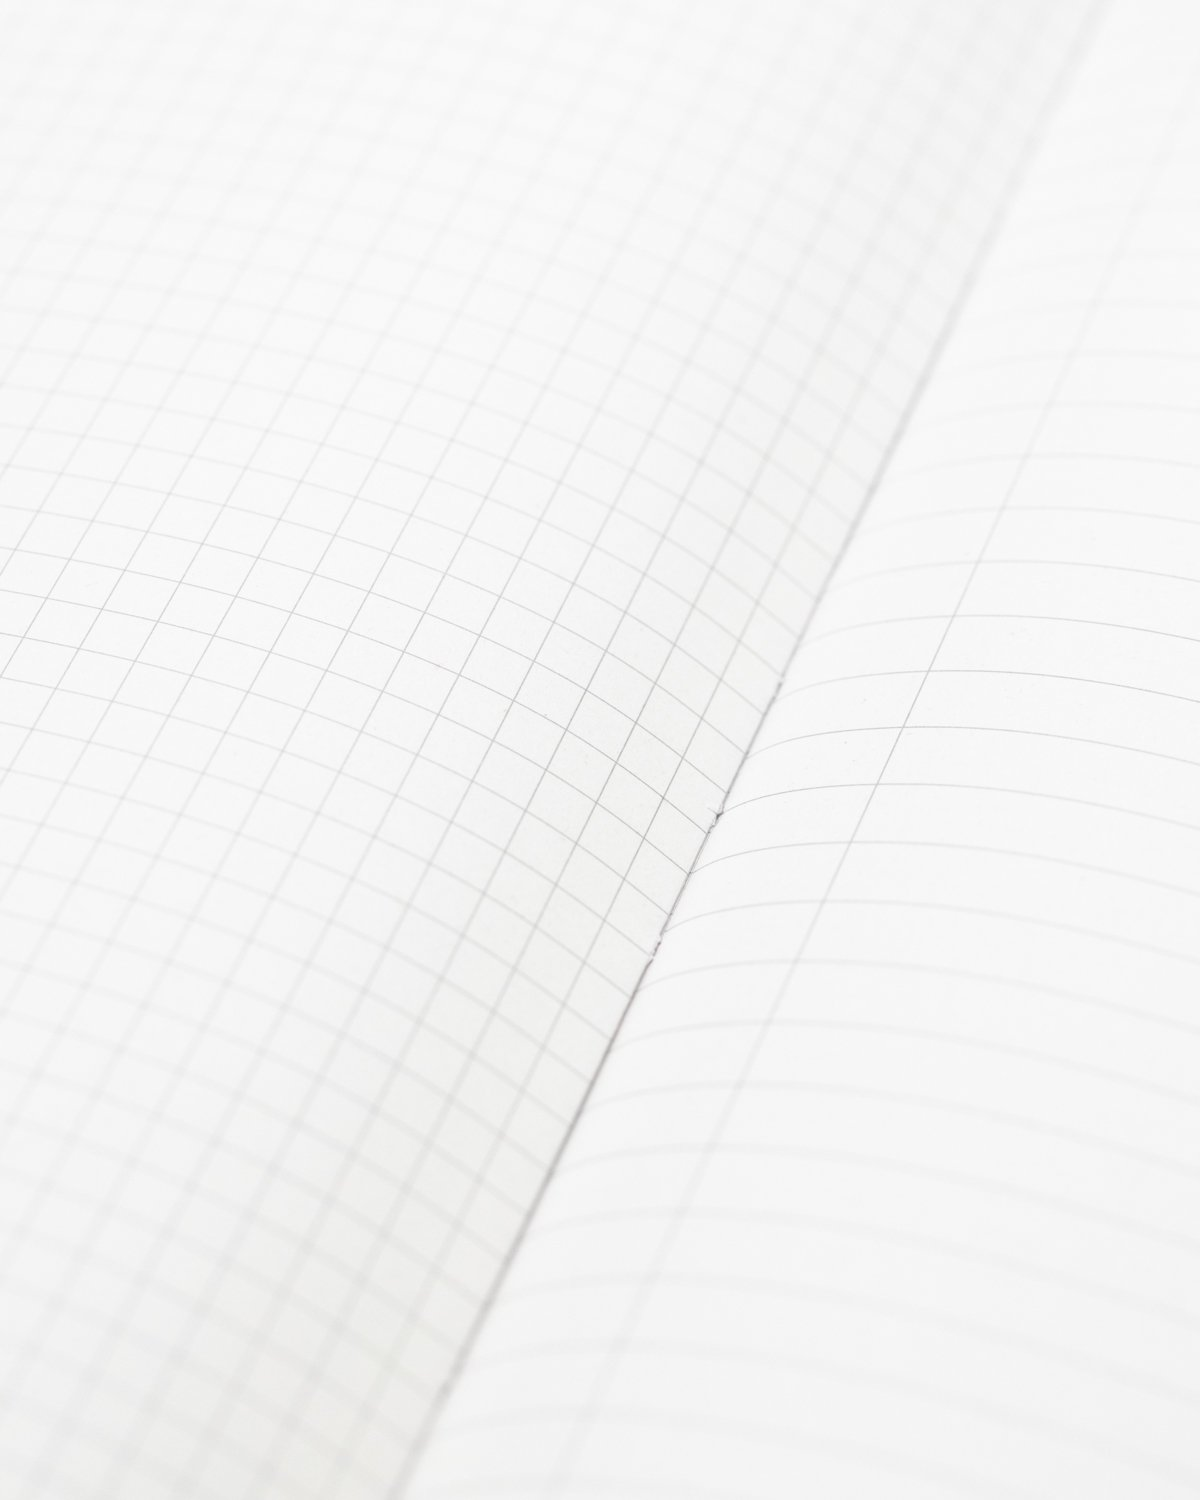 Grid and ruled pages inside